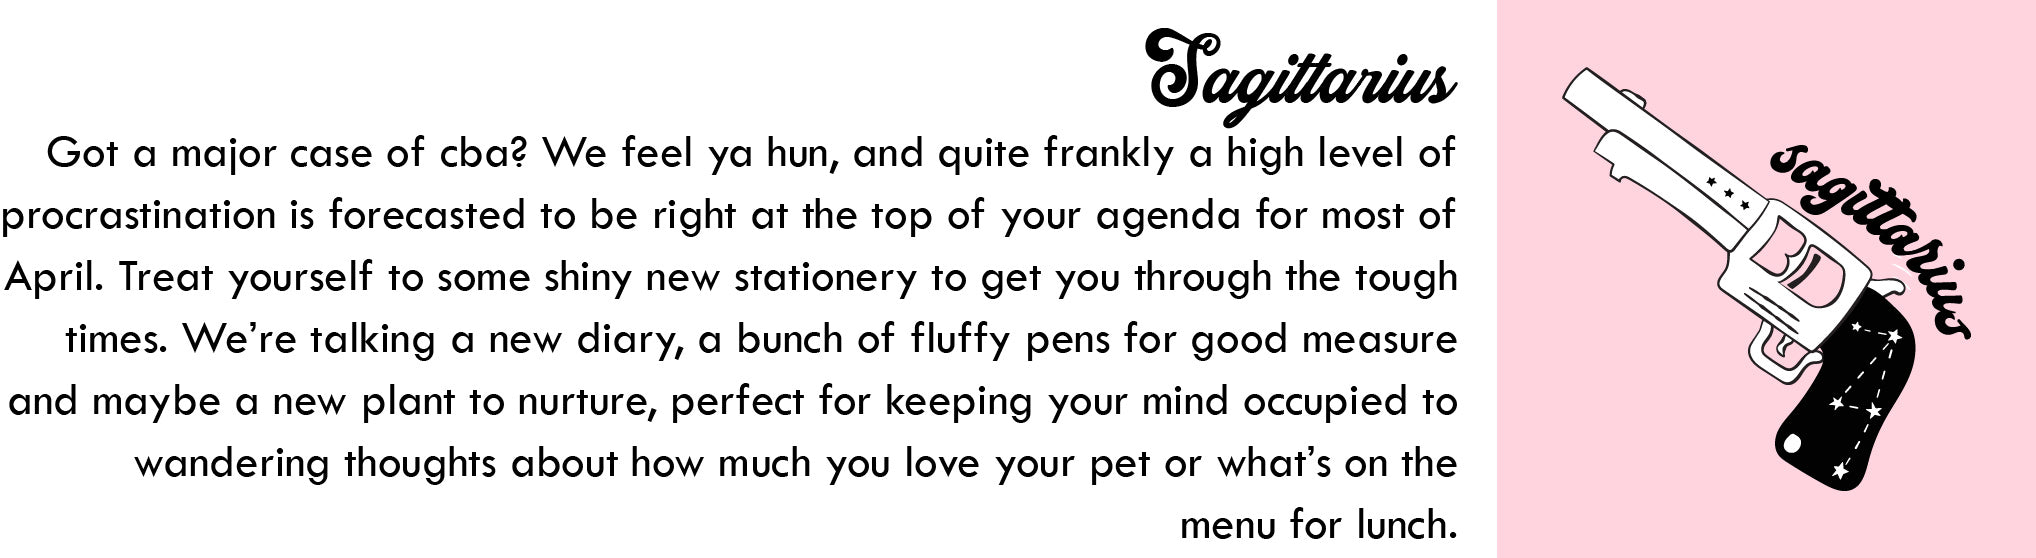 Sagittarius April Horoscope | Blog | Skinnydip London